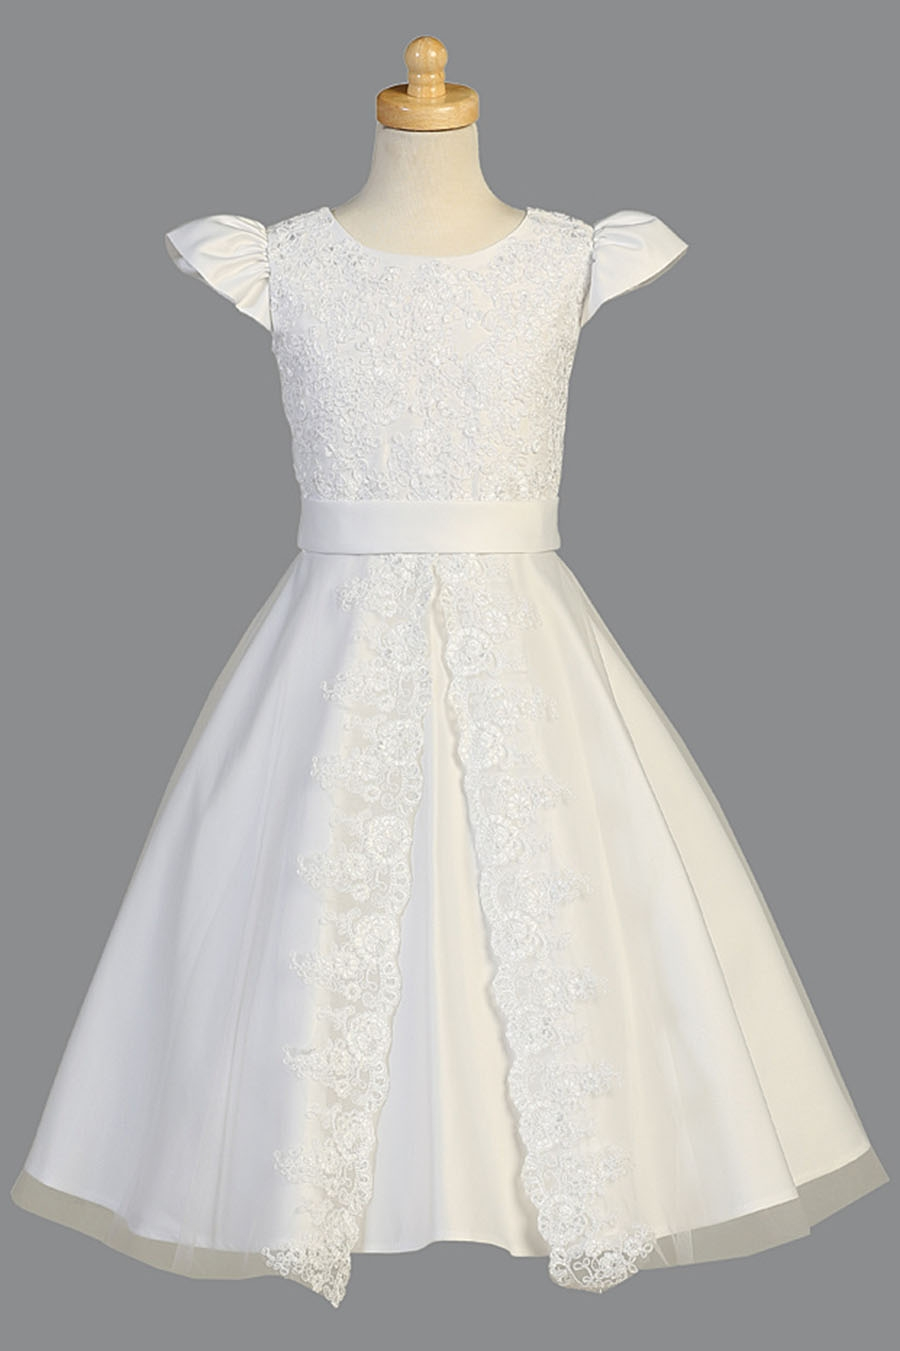 07d138f6eb1 Click to Enlarge Click to Enlarge Click to Enlarge. White Satin Communion  Dress w  Corded Floral Lace Applique